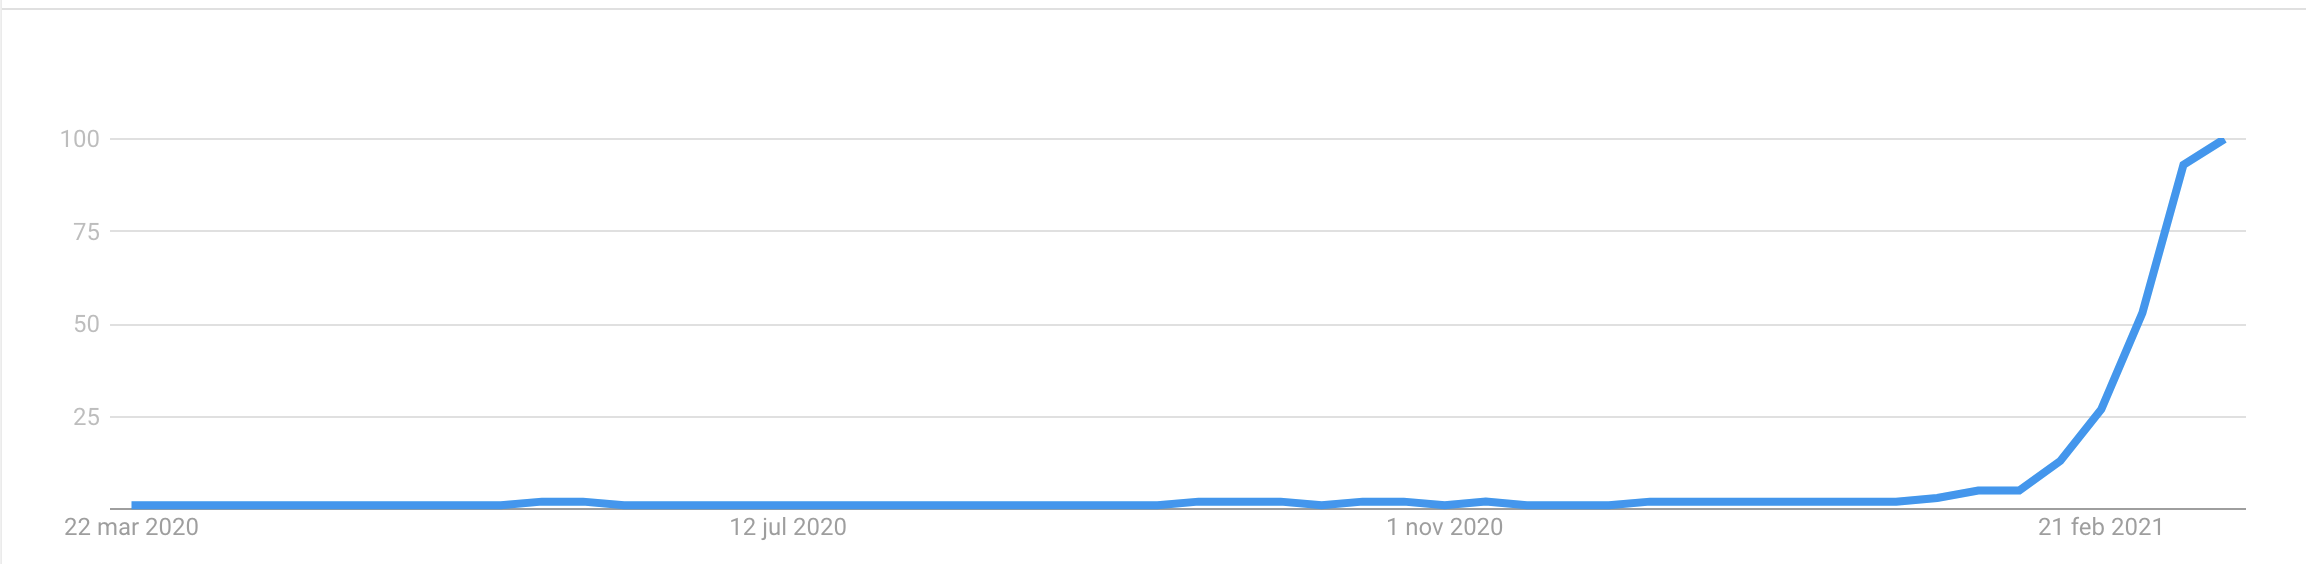 Trend of Non Fungible Token in Google